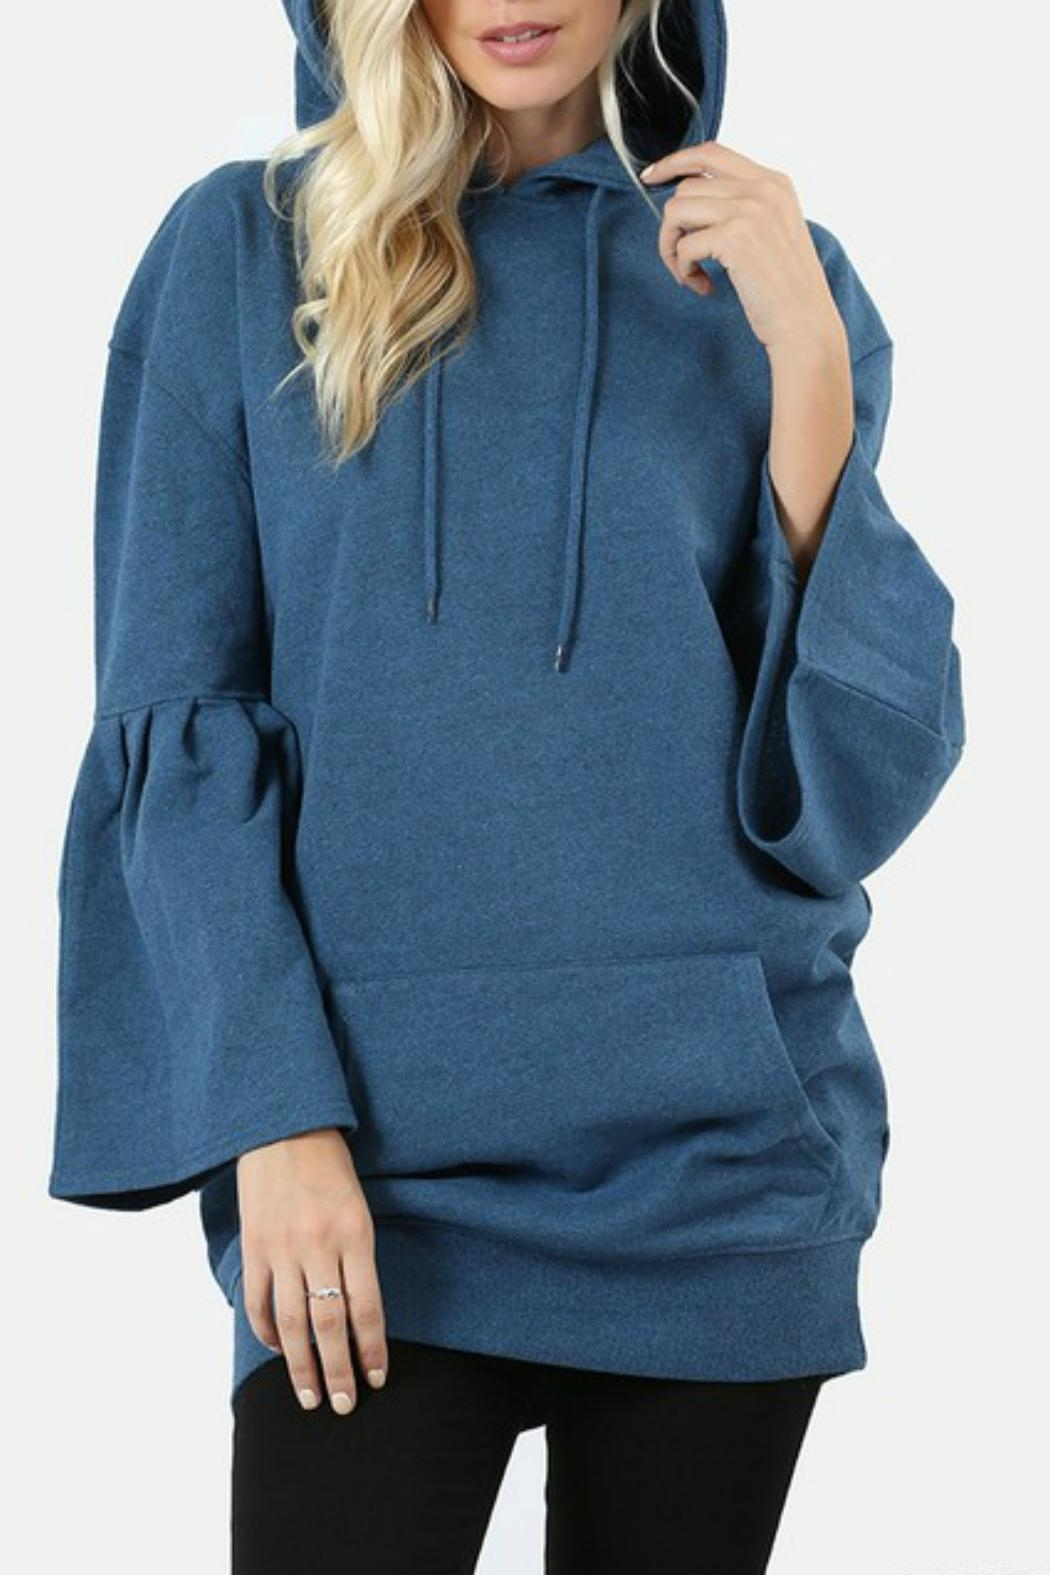 Zenana Outfitters Hooded Ruffle Sweater - Front Full Image